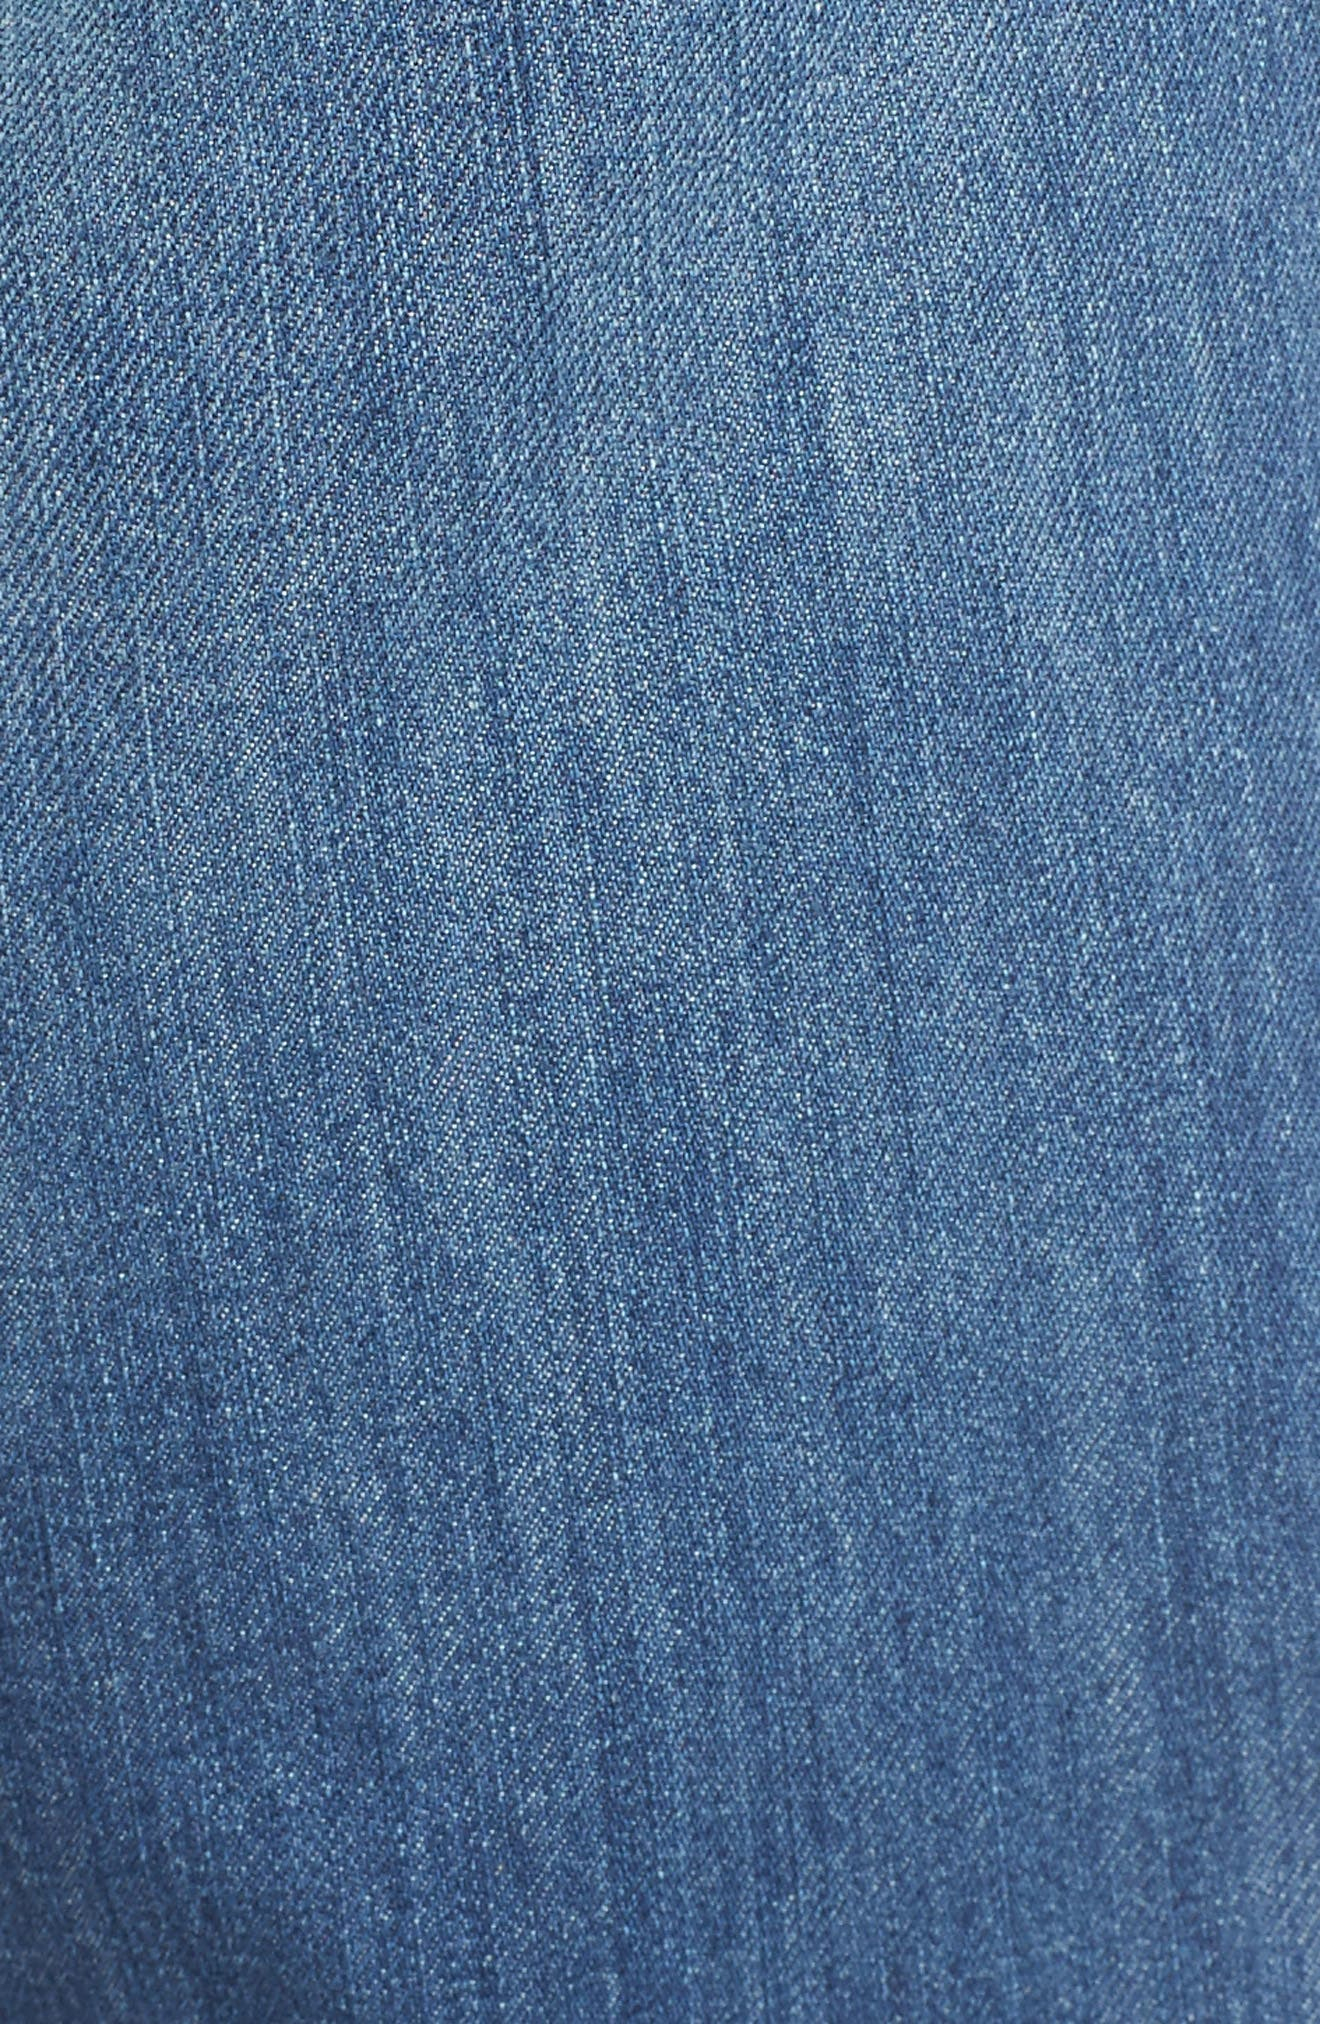 Barbados Straight Leg Jeans,                             Alternate thumbnail 5, color,                             Light Indigo Wash